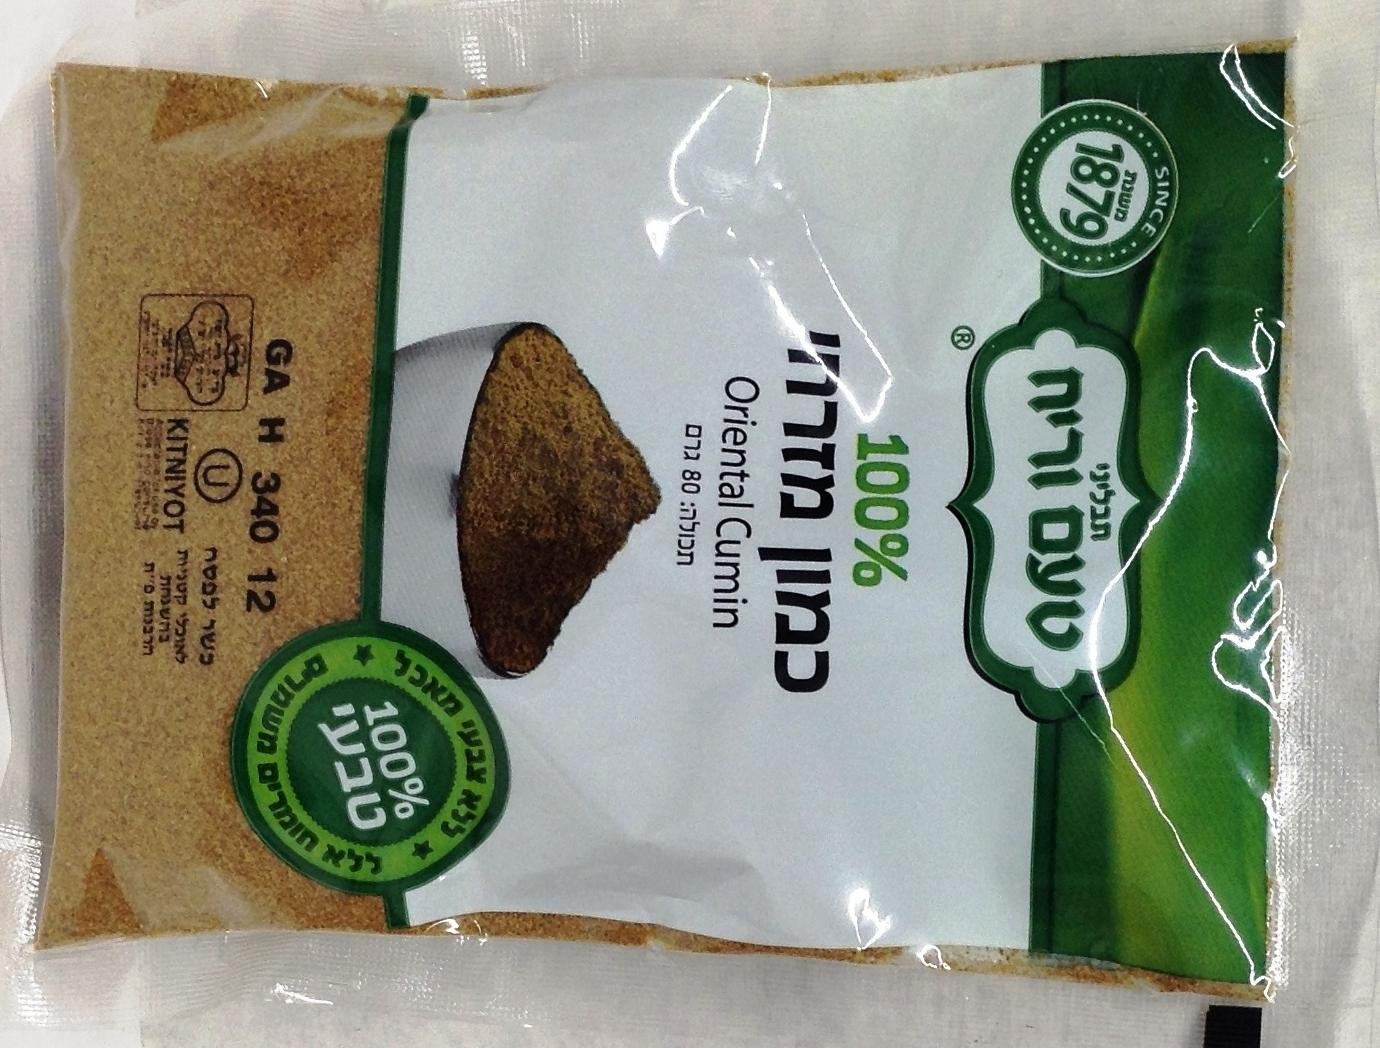 Taam Oriental Cumin Kosher For Passover 2.8 Oz. Pack Of 6.